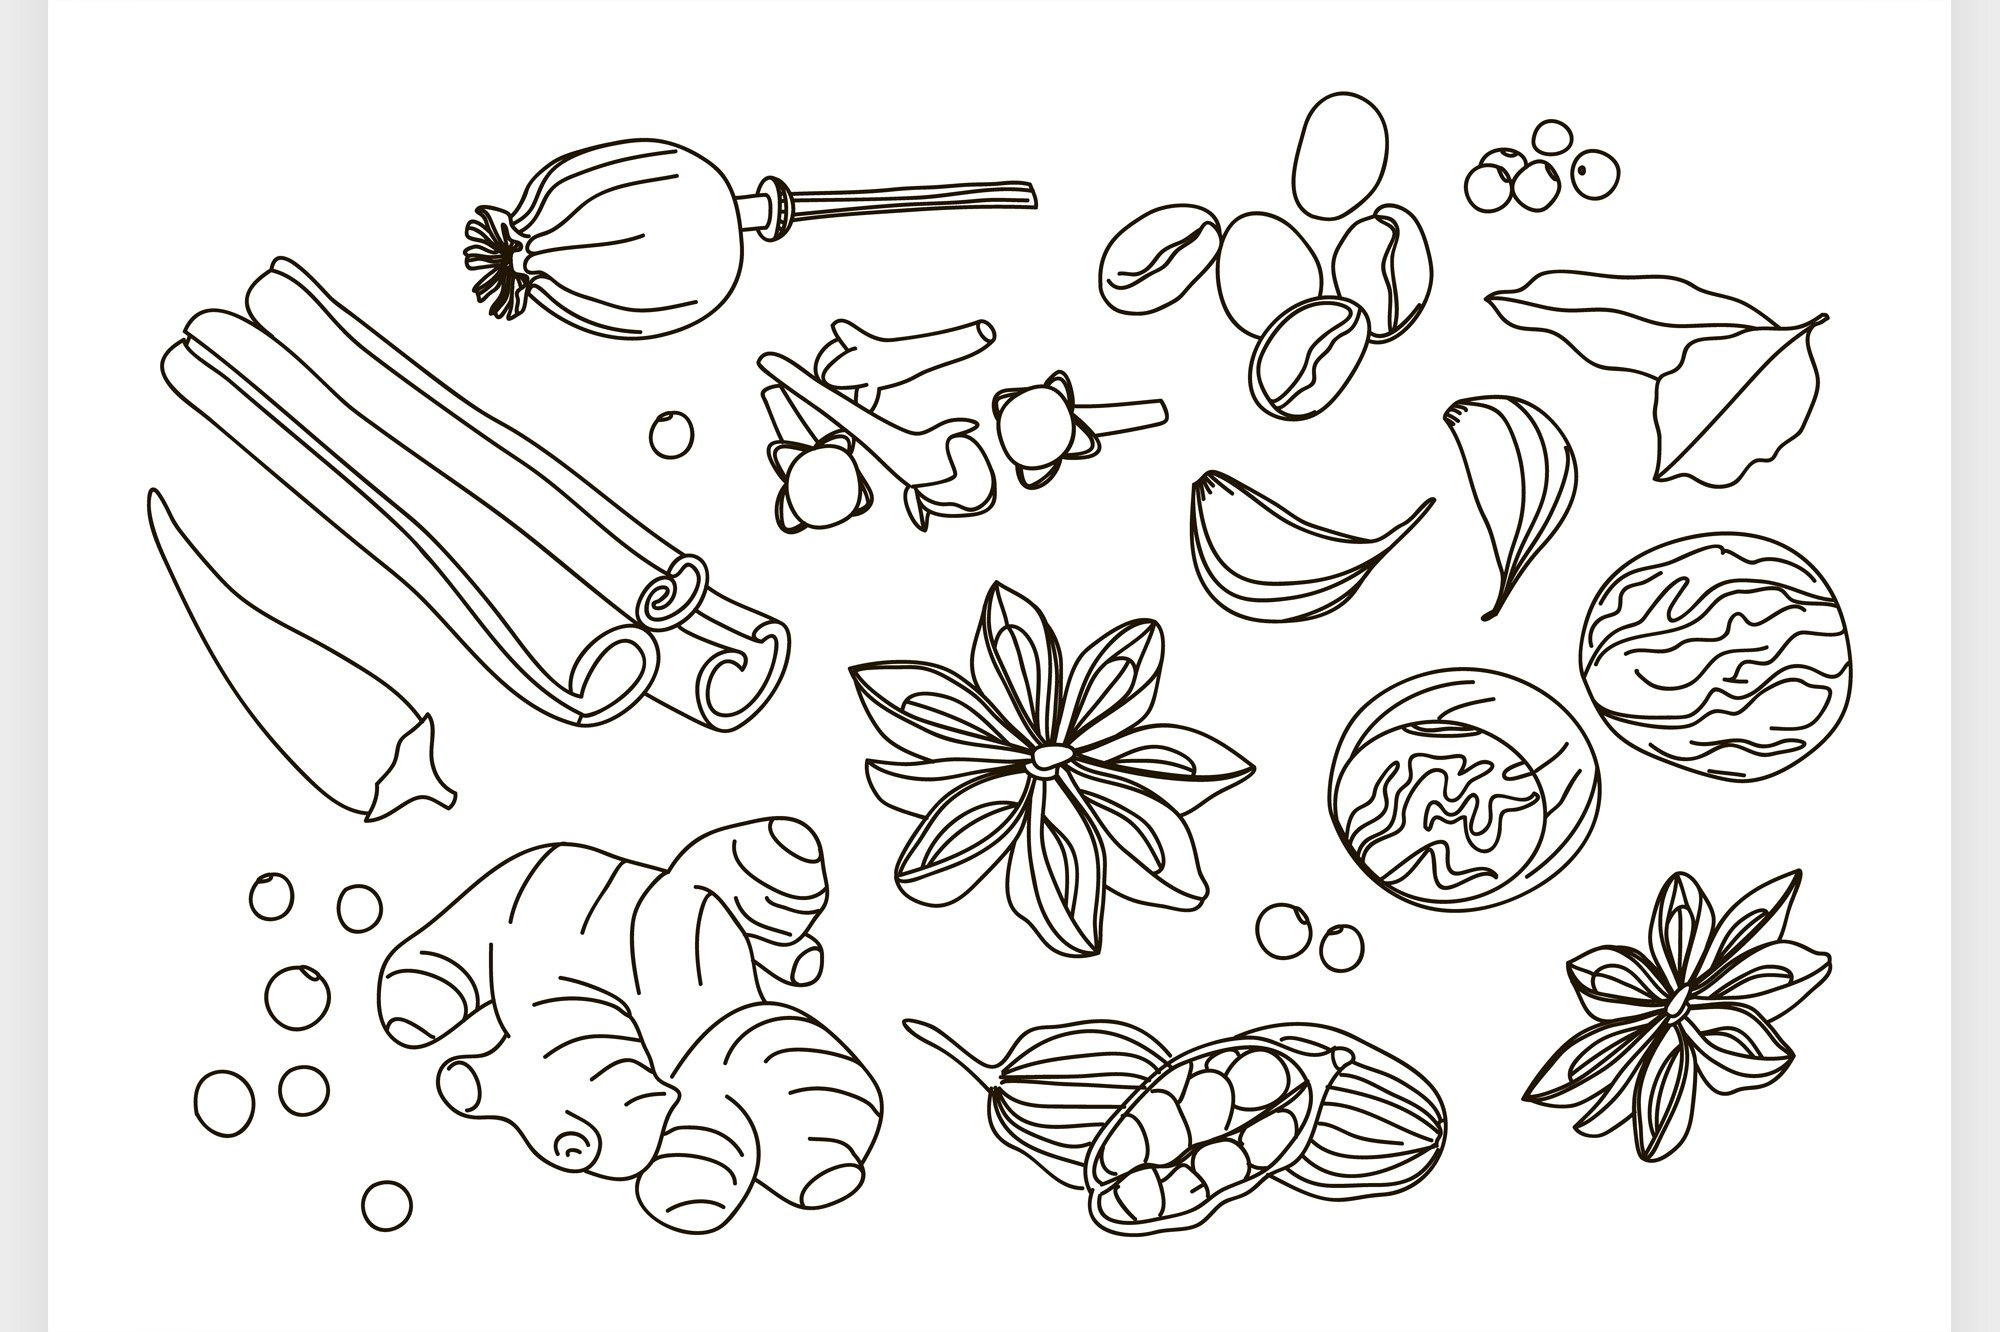 Spices, condiments and herbs decorative elements example image 1